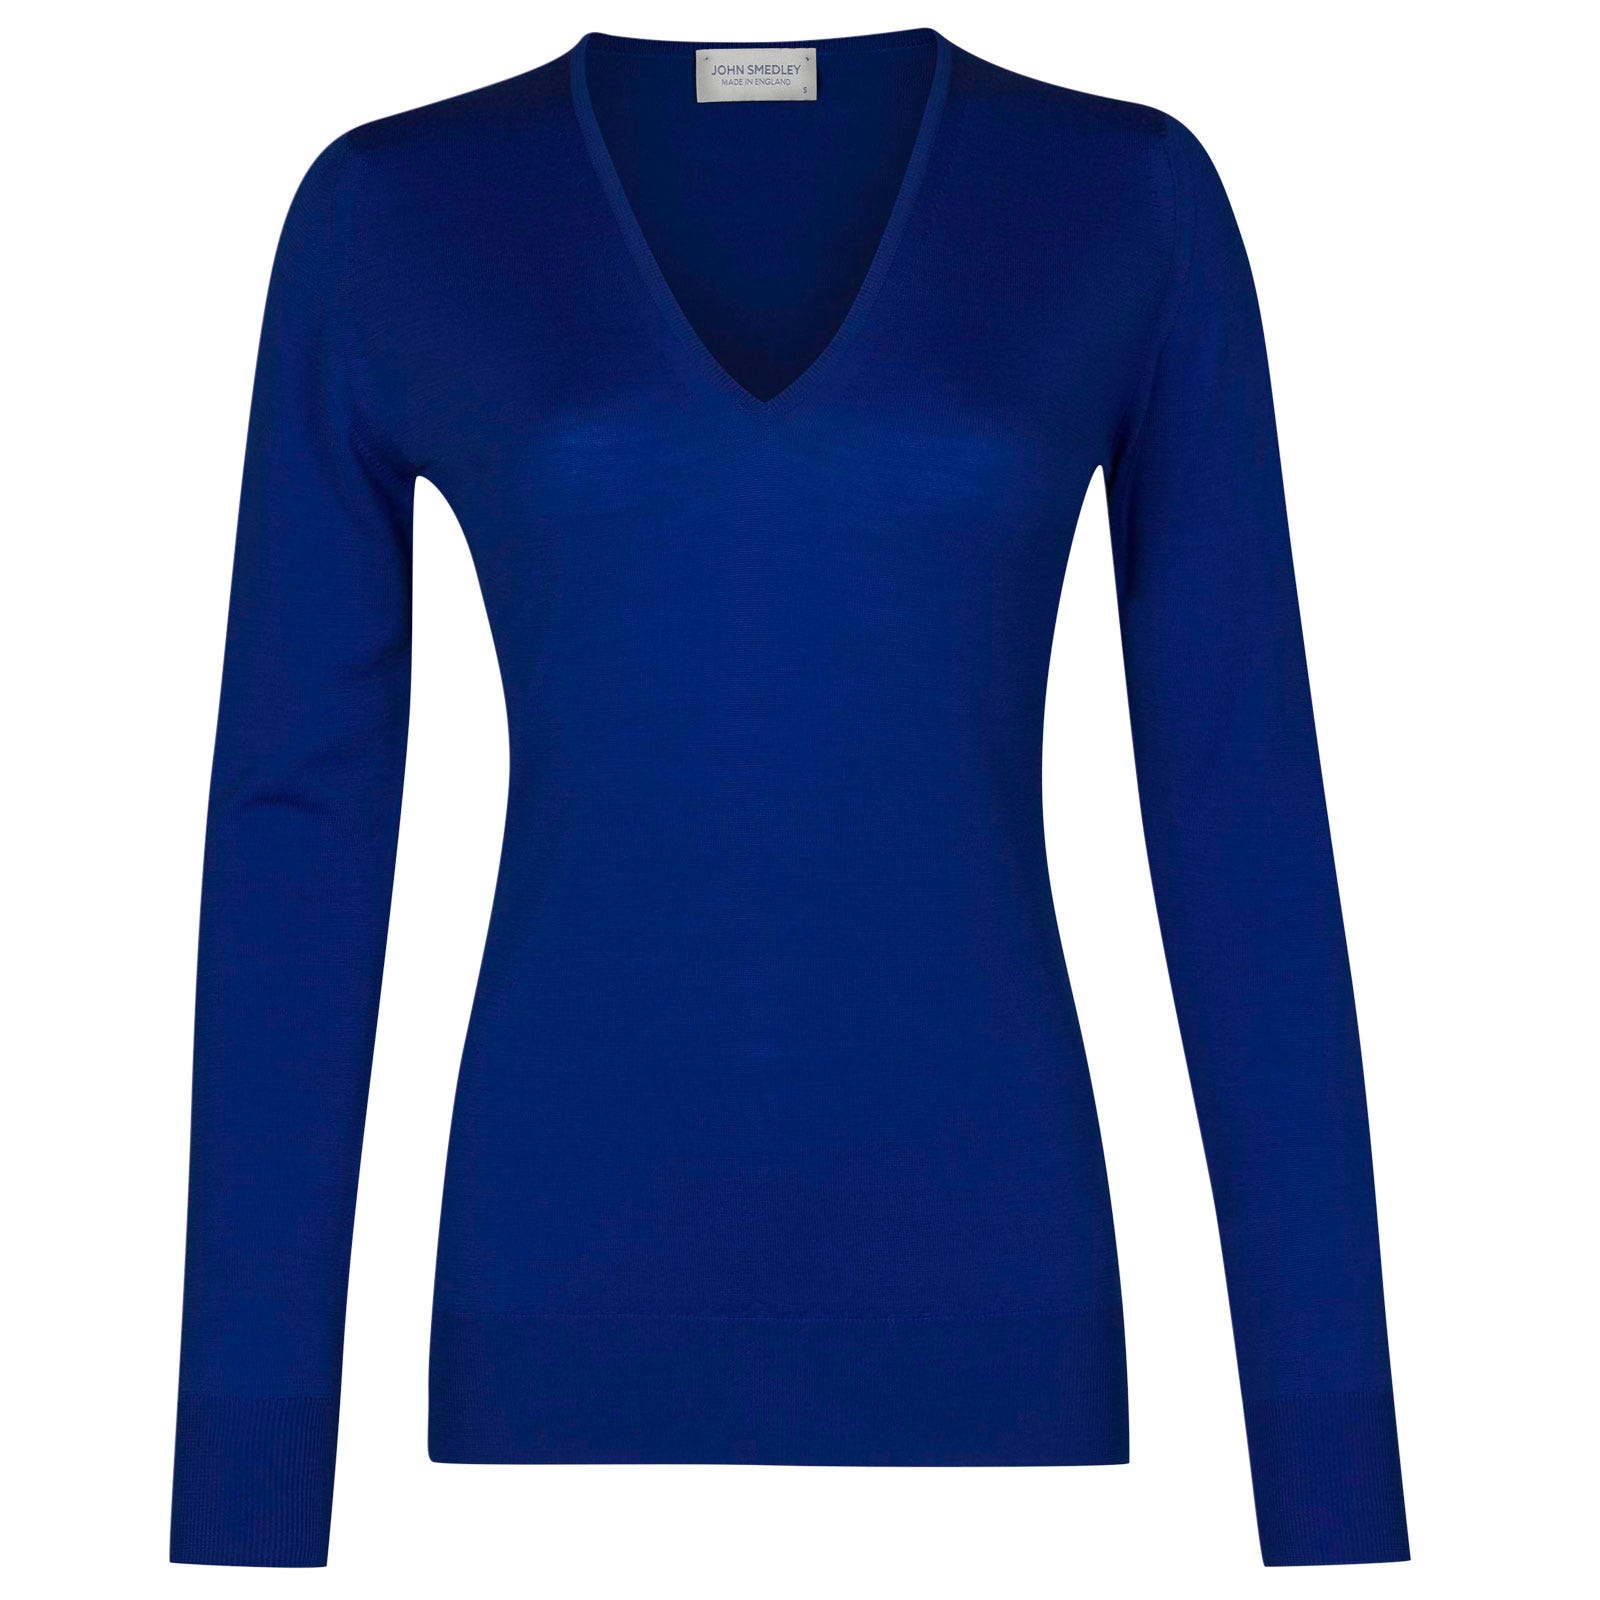 John Smedley orchid Merino Wool Sweater in Coniston Blue-S